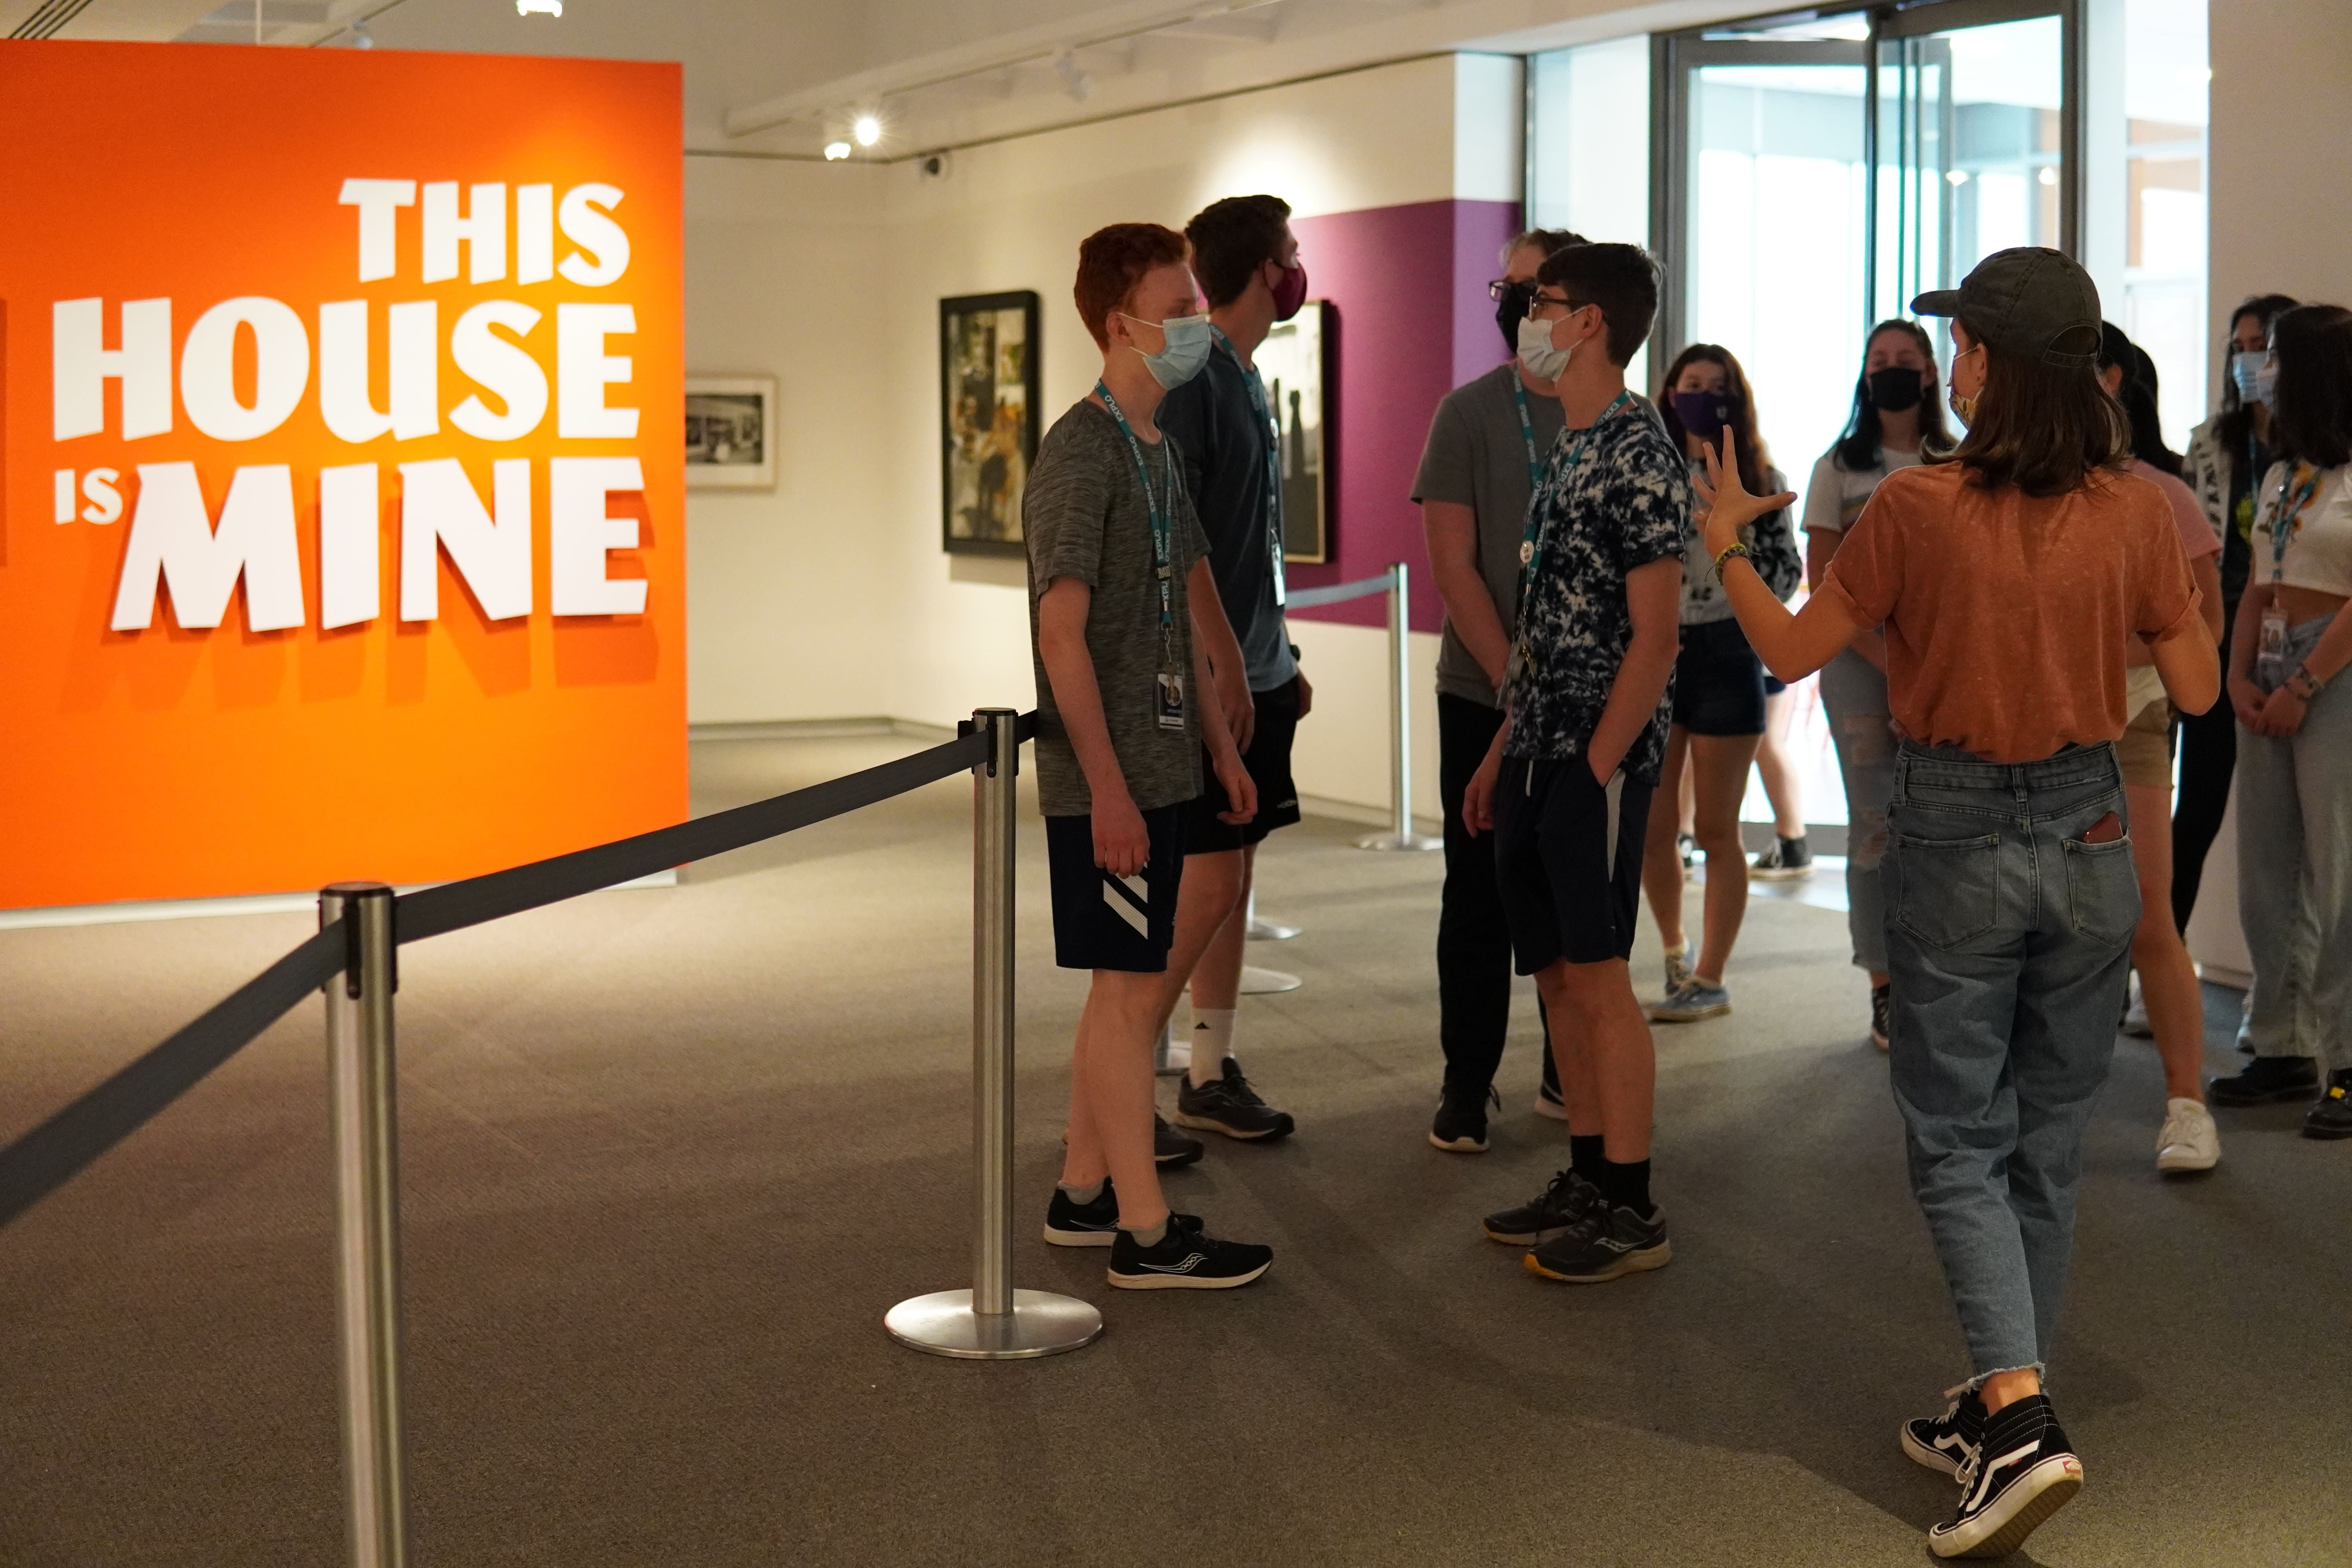 Students gather in the museum next to an exhibit titled